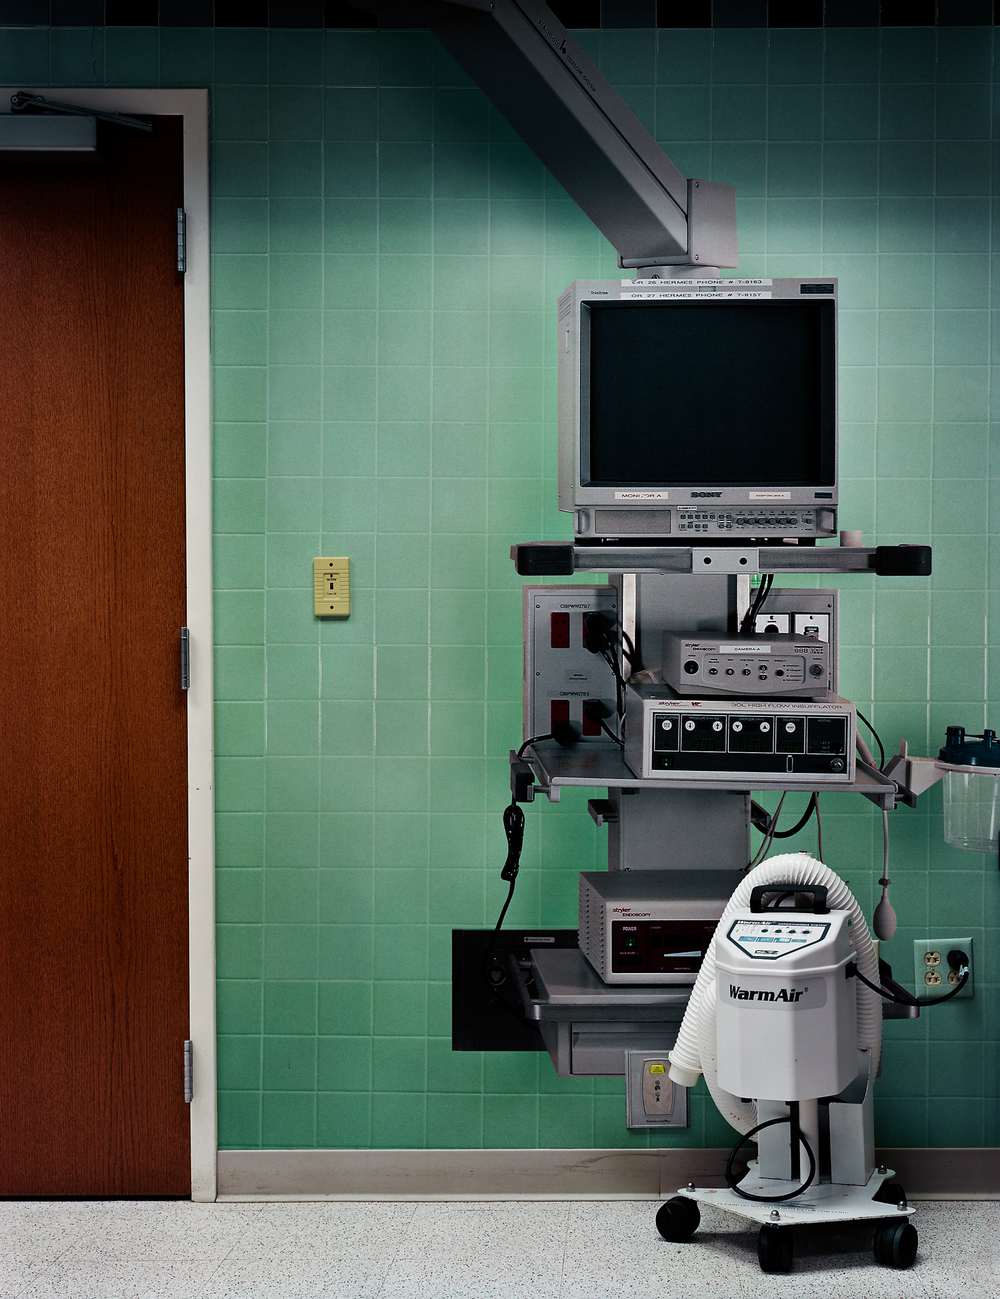 Operating Room #1